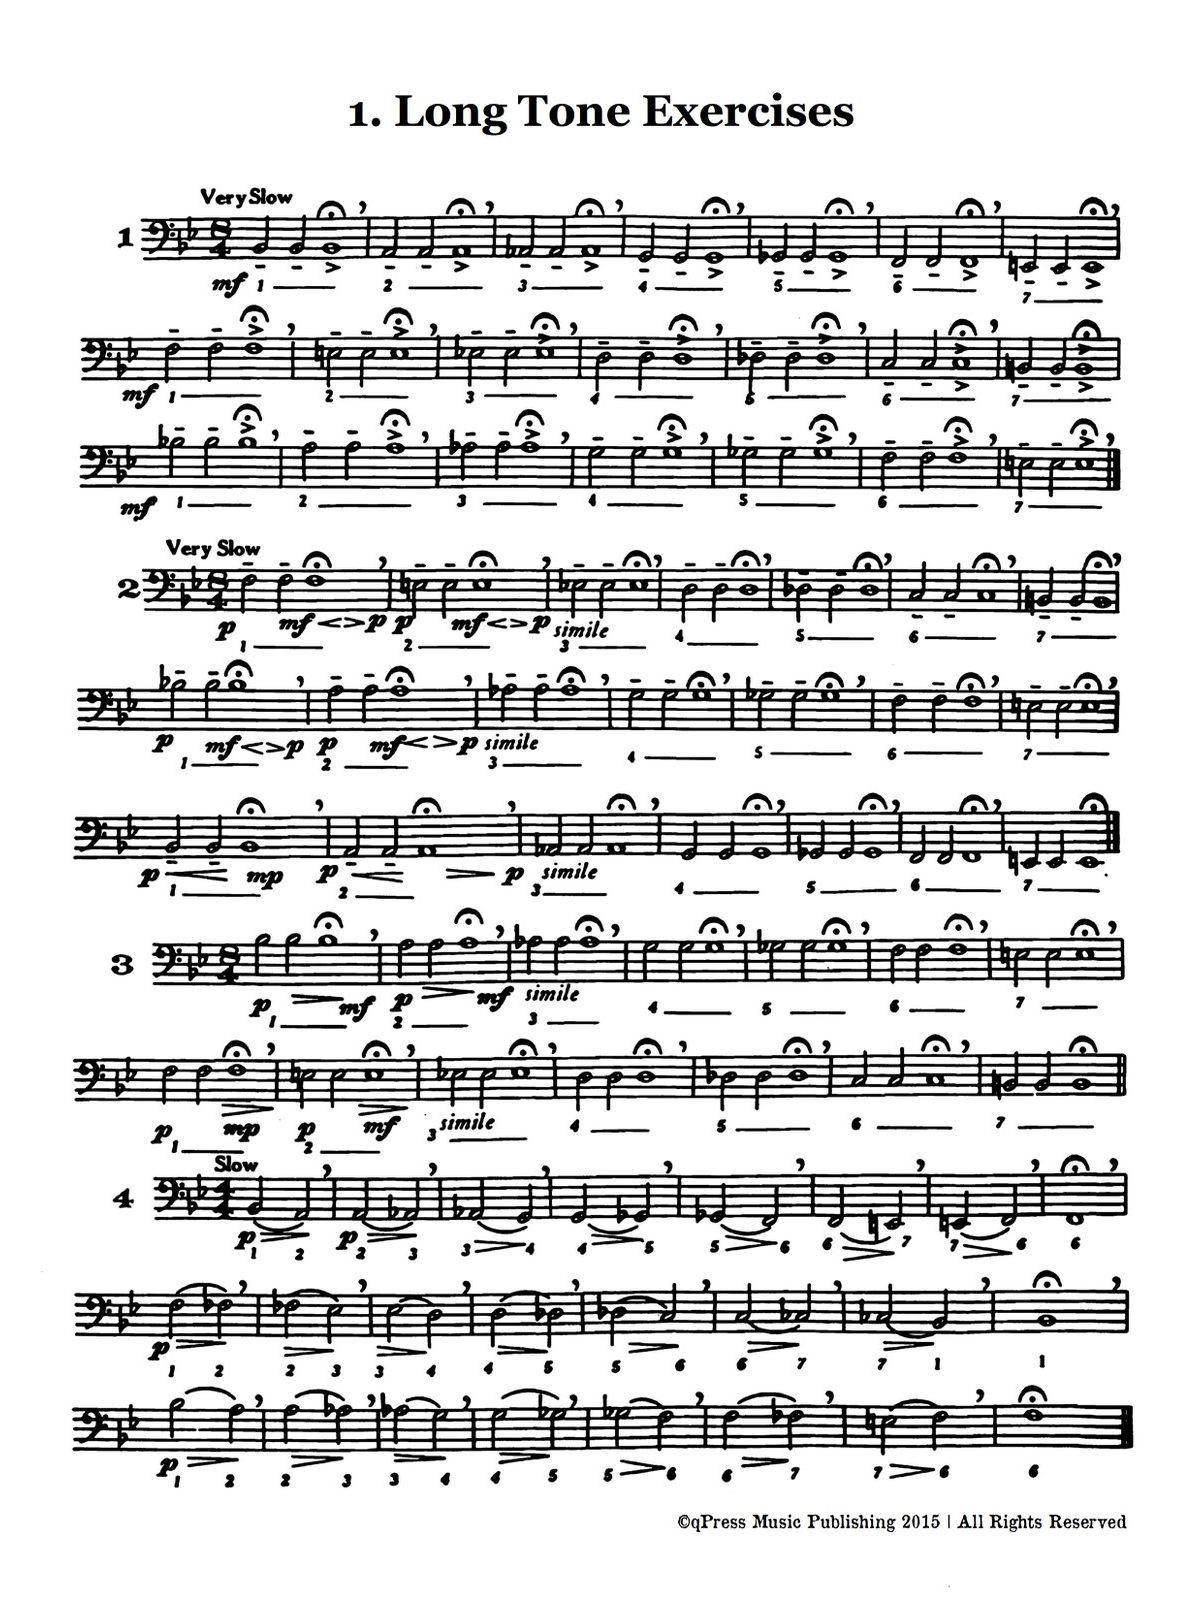 Schlossberg, Daily Drills and Technical Exercises for Trombone-p05